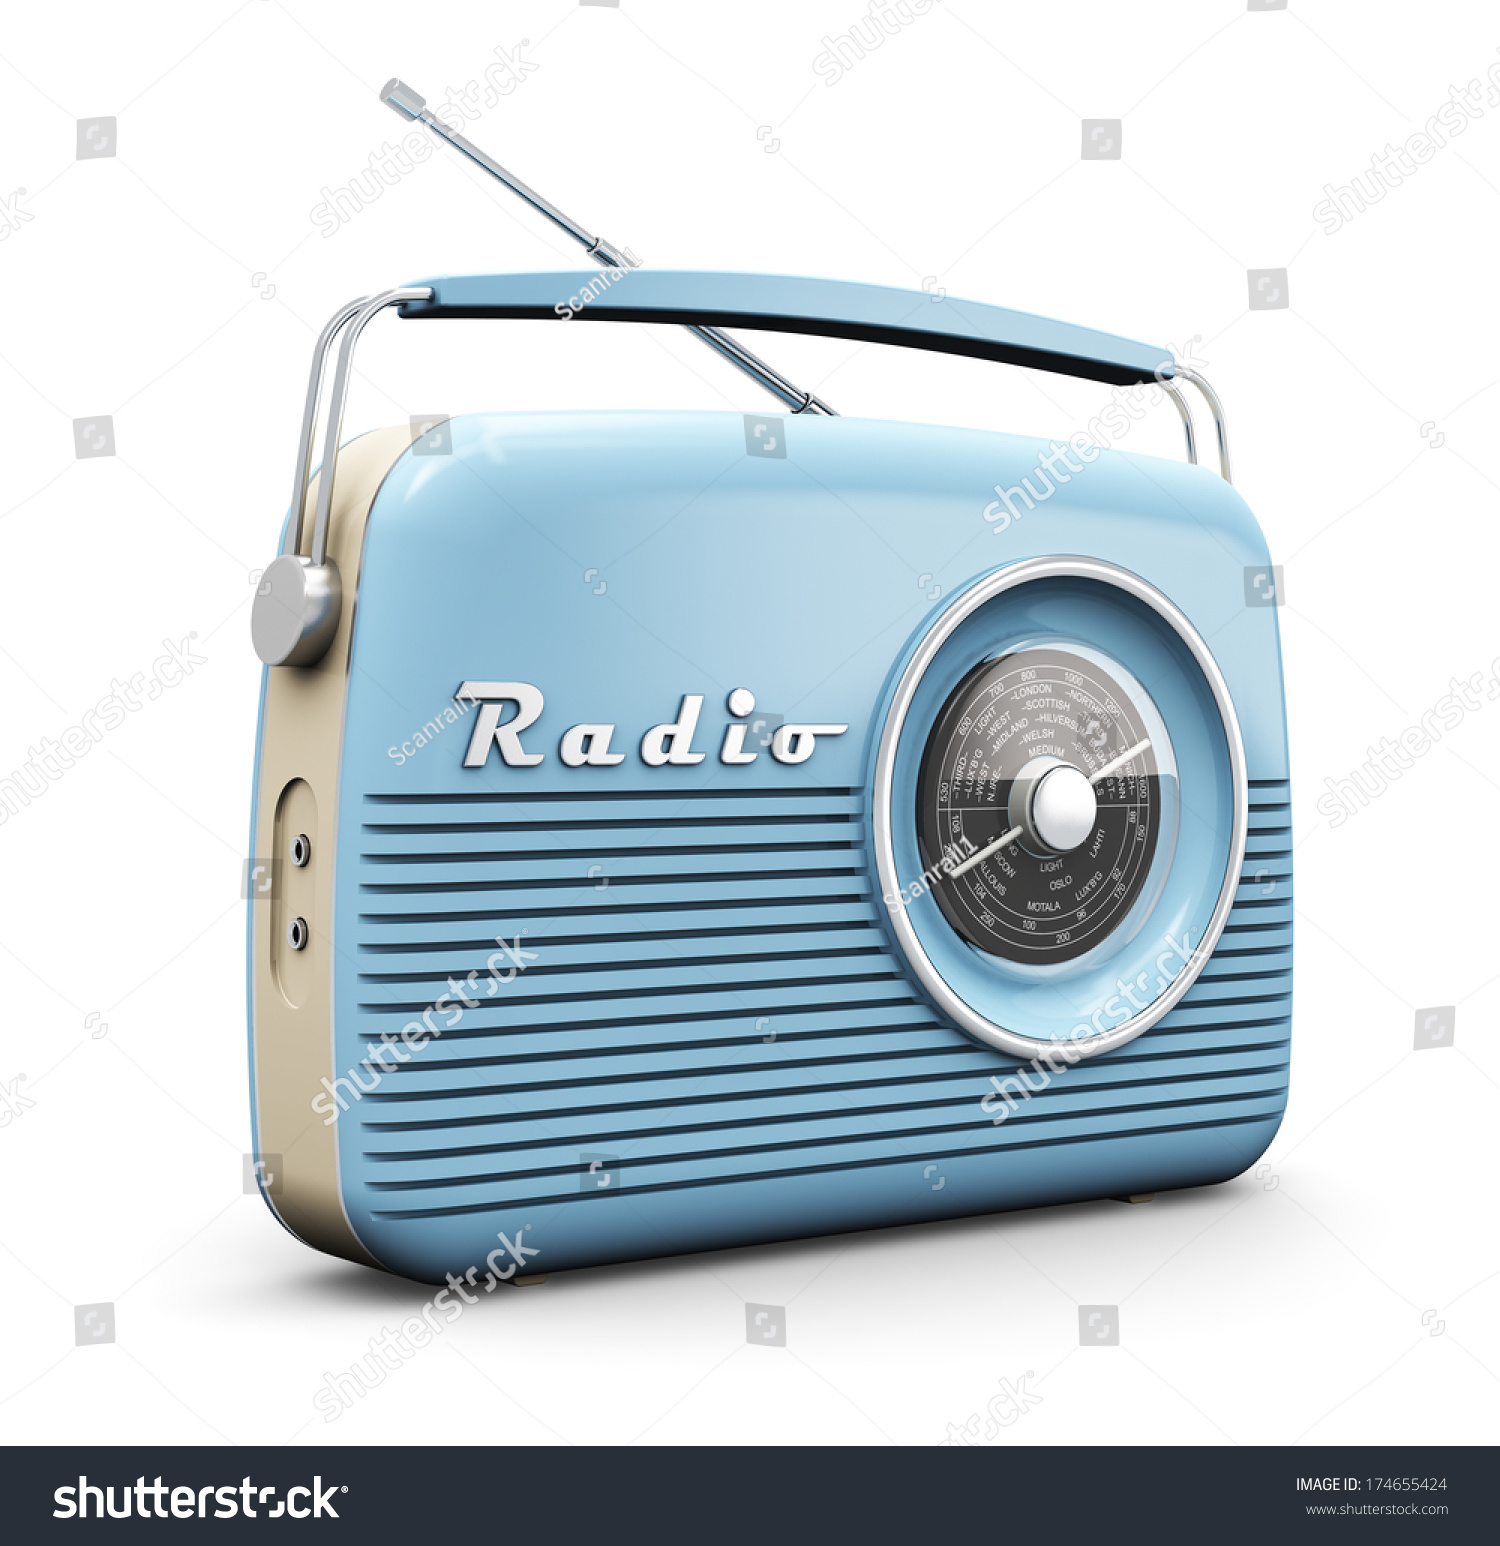 old blue vintage retro style radio receiver isolated on white background stock photo 174655424. Black Bedroom Furniture Sets. Home Design Ideas